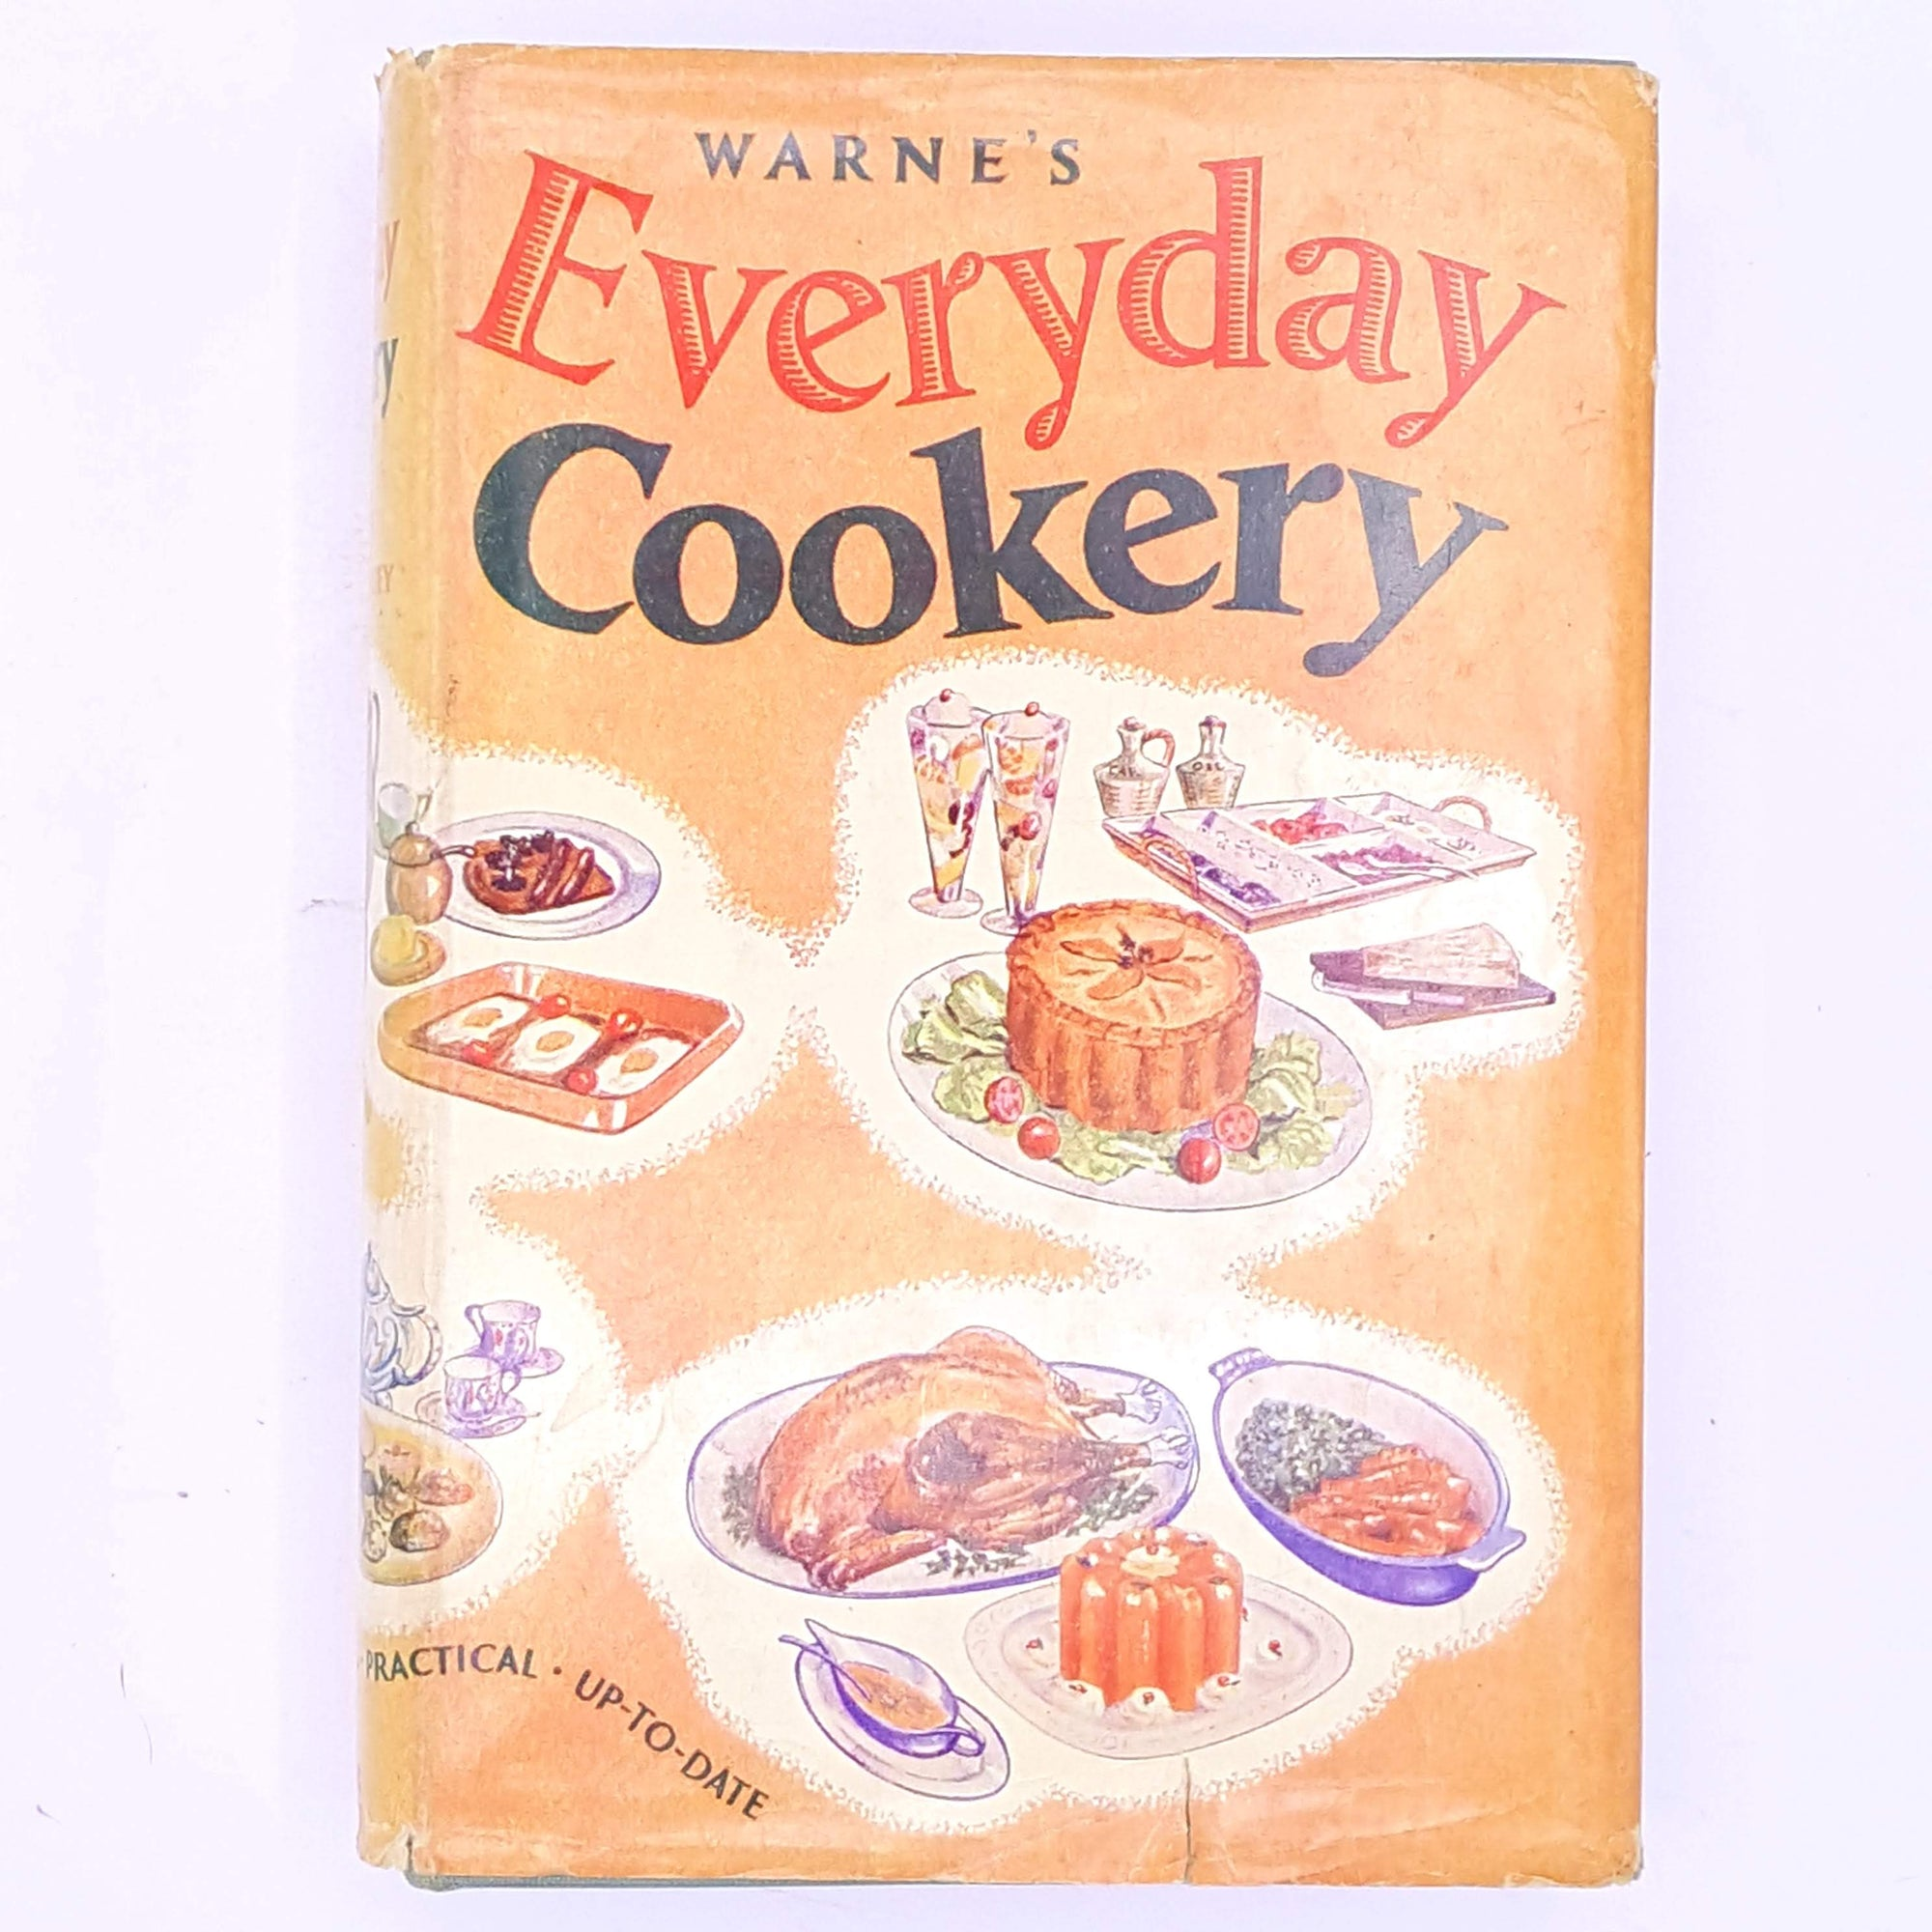 Warne's Everyday Cookery, Mrs C.C Prior & Mrs Mabel Wijey